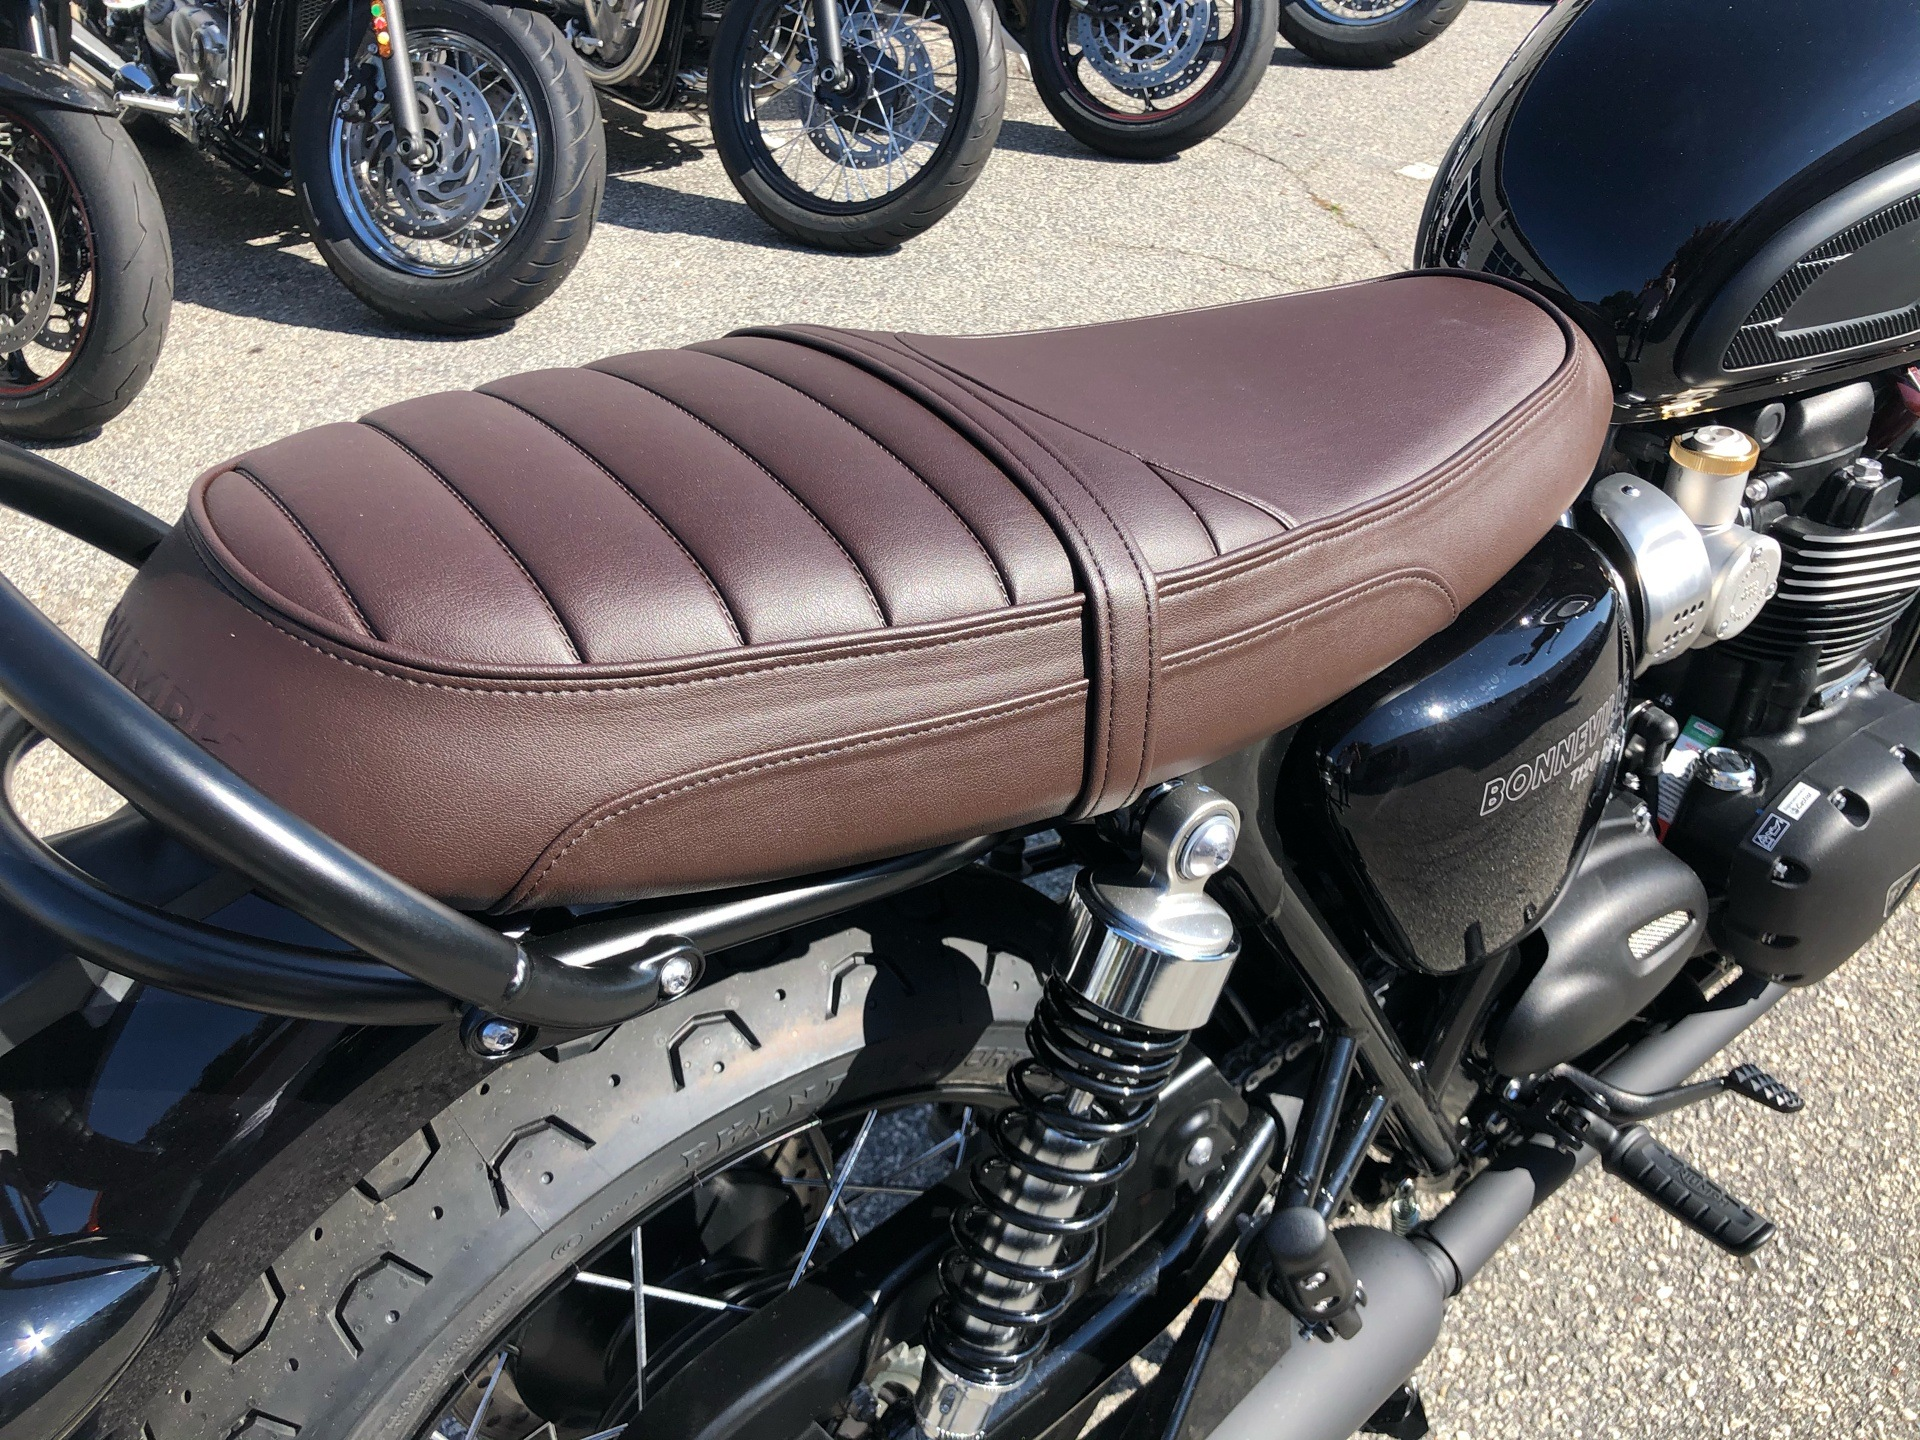 2020 Triumph Bonneville T120 Black in Greenville, South Carolina - Photo 4